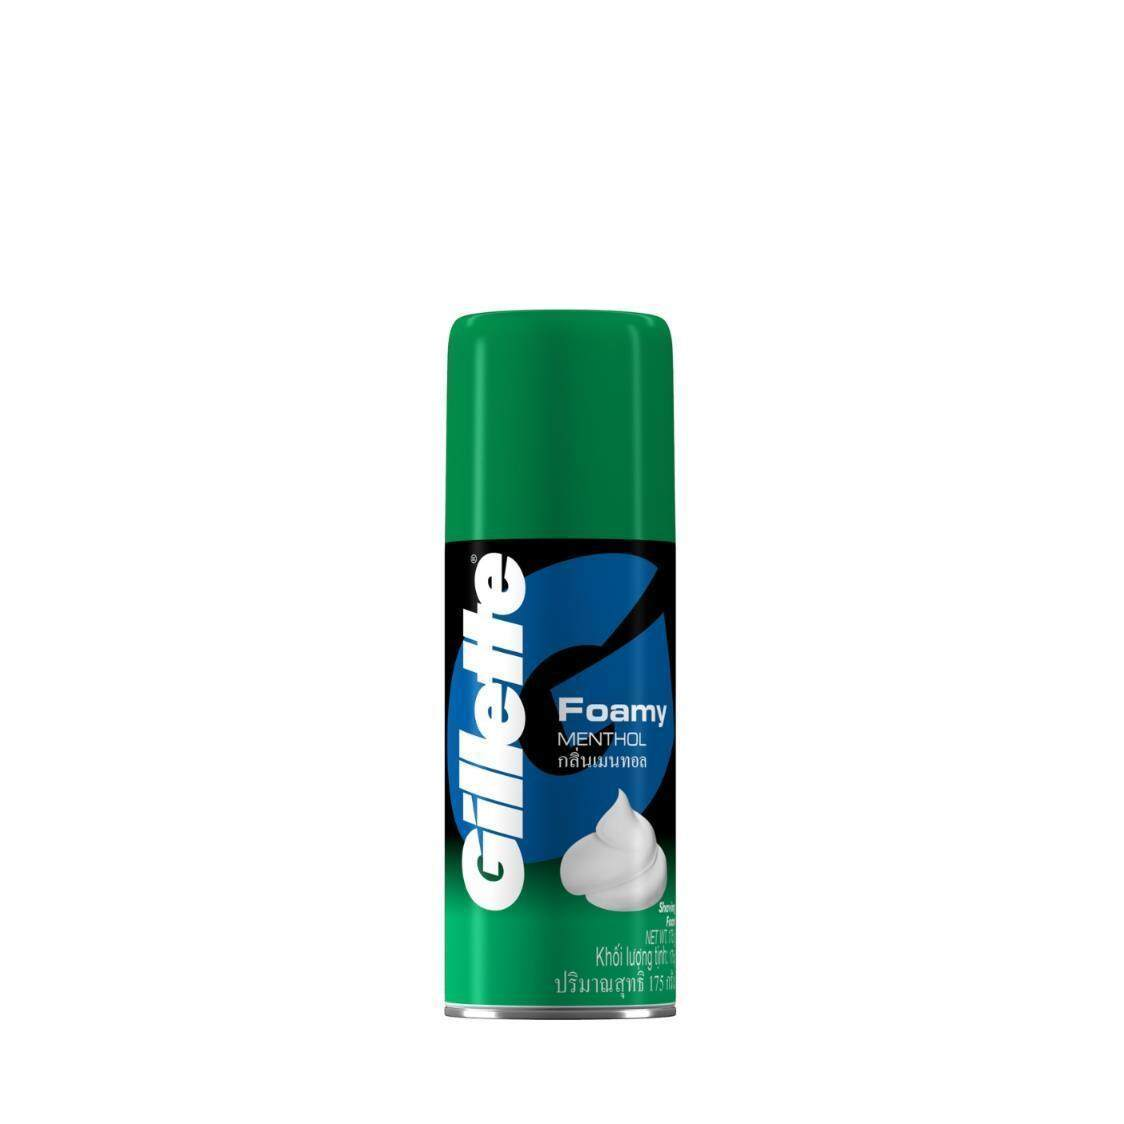 Gillette Foamy Menthol Shaving Foam 175g